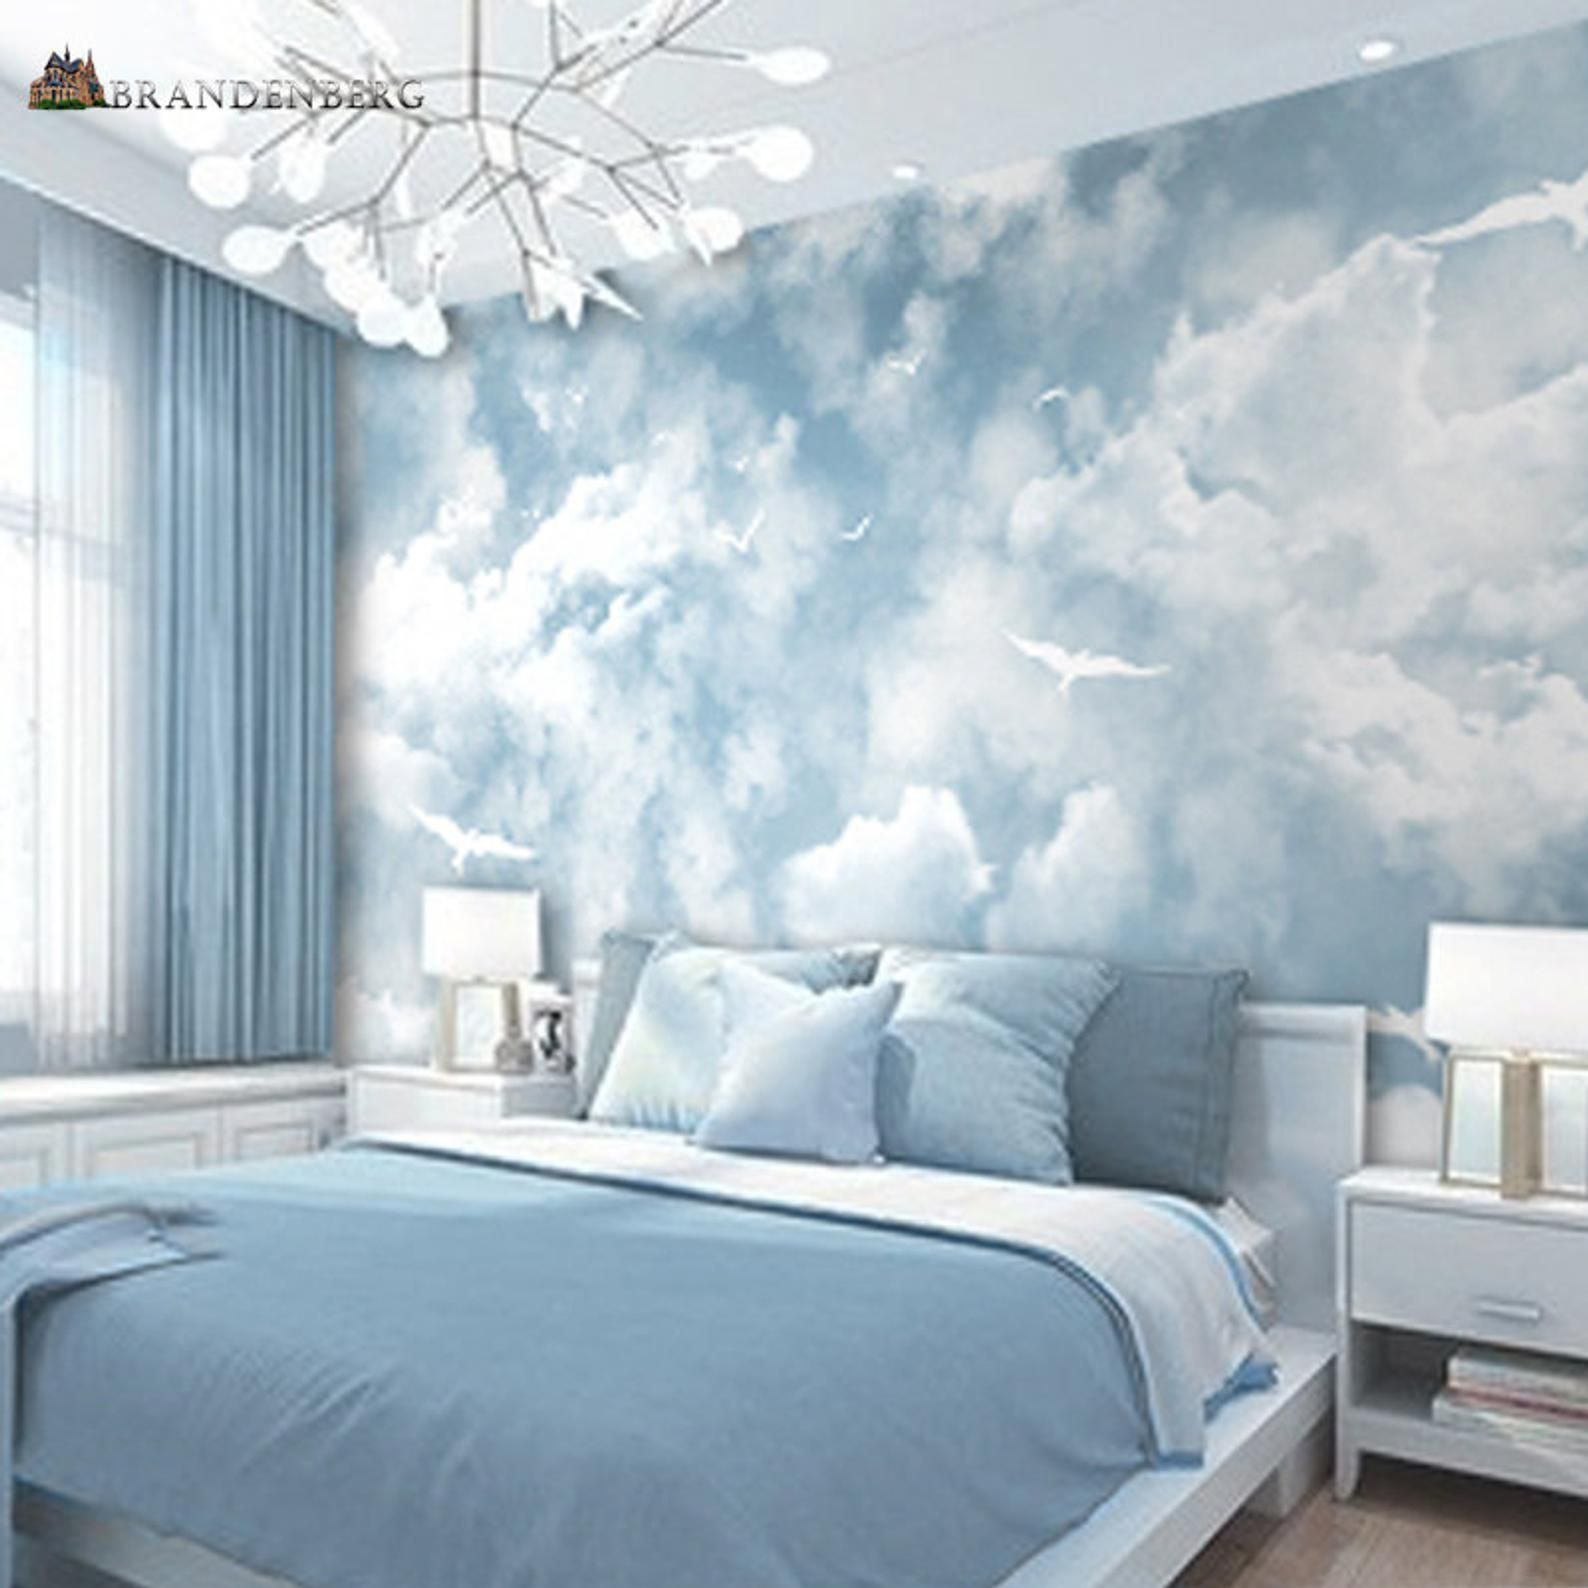 Abstract Blue Sky White Colors Sky Wallpaper Wall Mural Beautiful Sky Scene With Soaring Seagulls Bedroom Living Room Wall Mural Wall Decor Blue Room Decor Blue Rooms Bedroom Wall Designs Blue wallpaper room inspiration